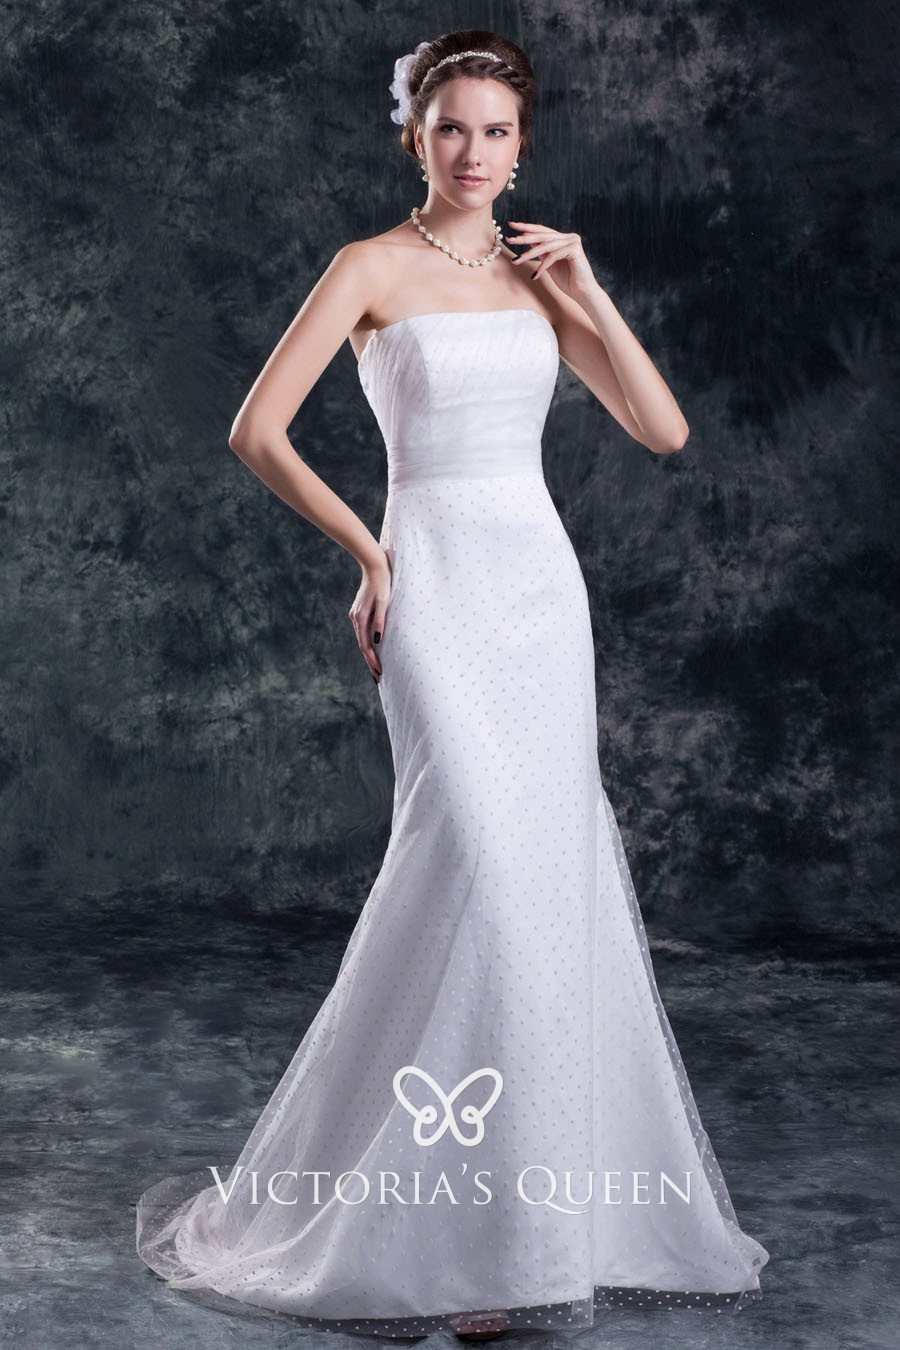 Polka Dot Tulle Overlay White Satin Strapless Mermaid Wedding Dress